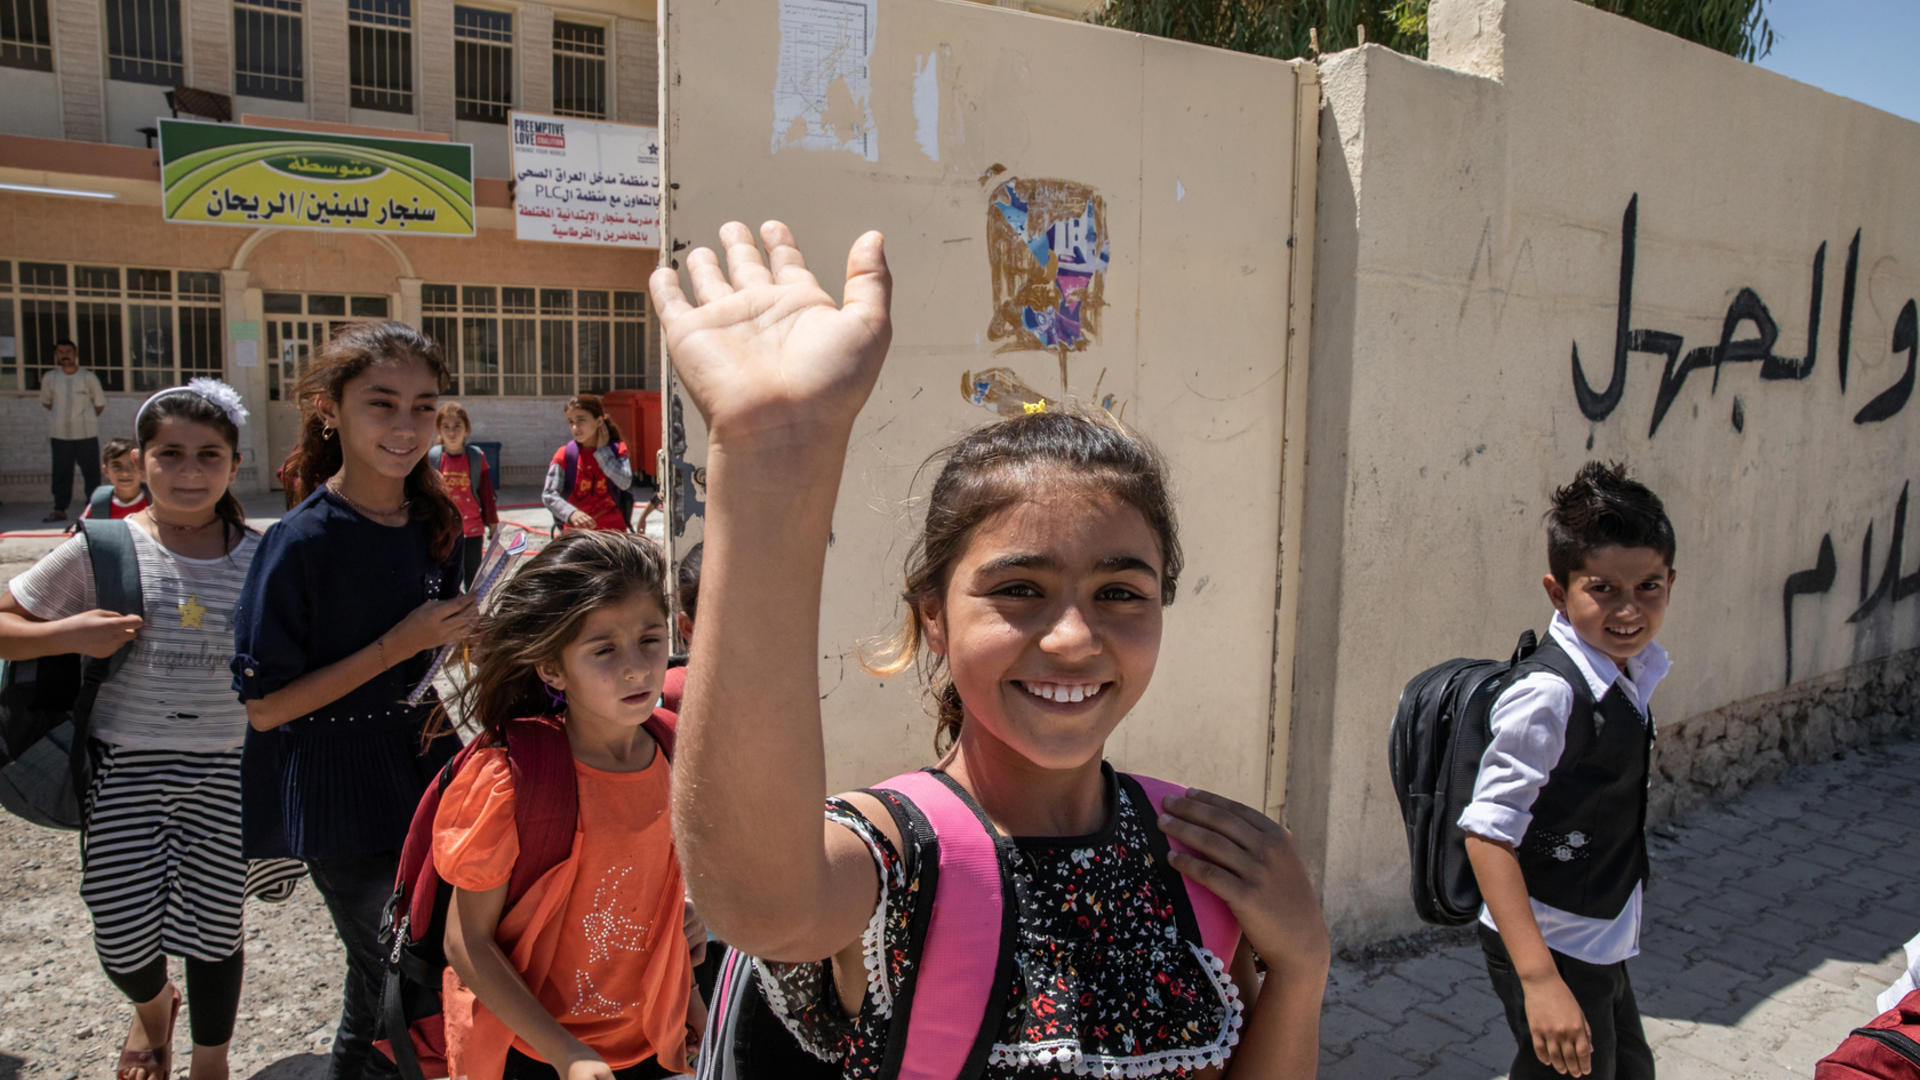 Sabah and other Iraqi children at an International Rescue Committee-supported school in Sinjar, Iraq